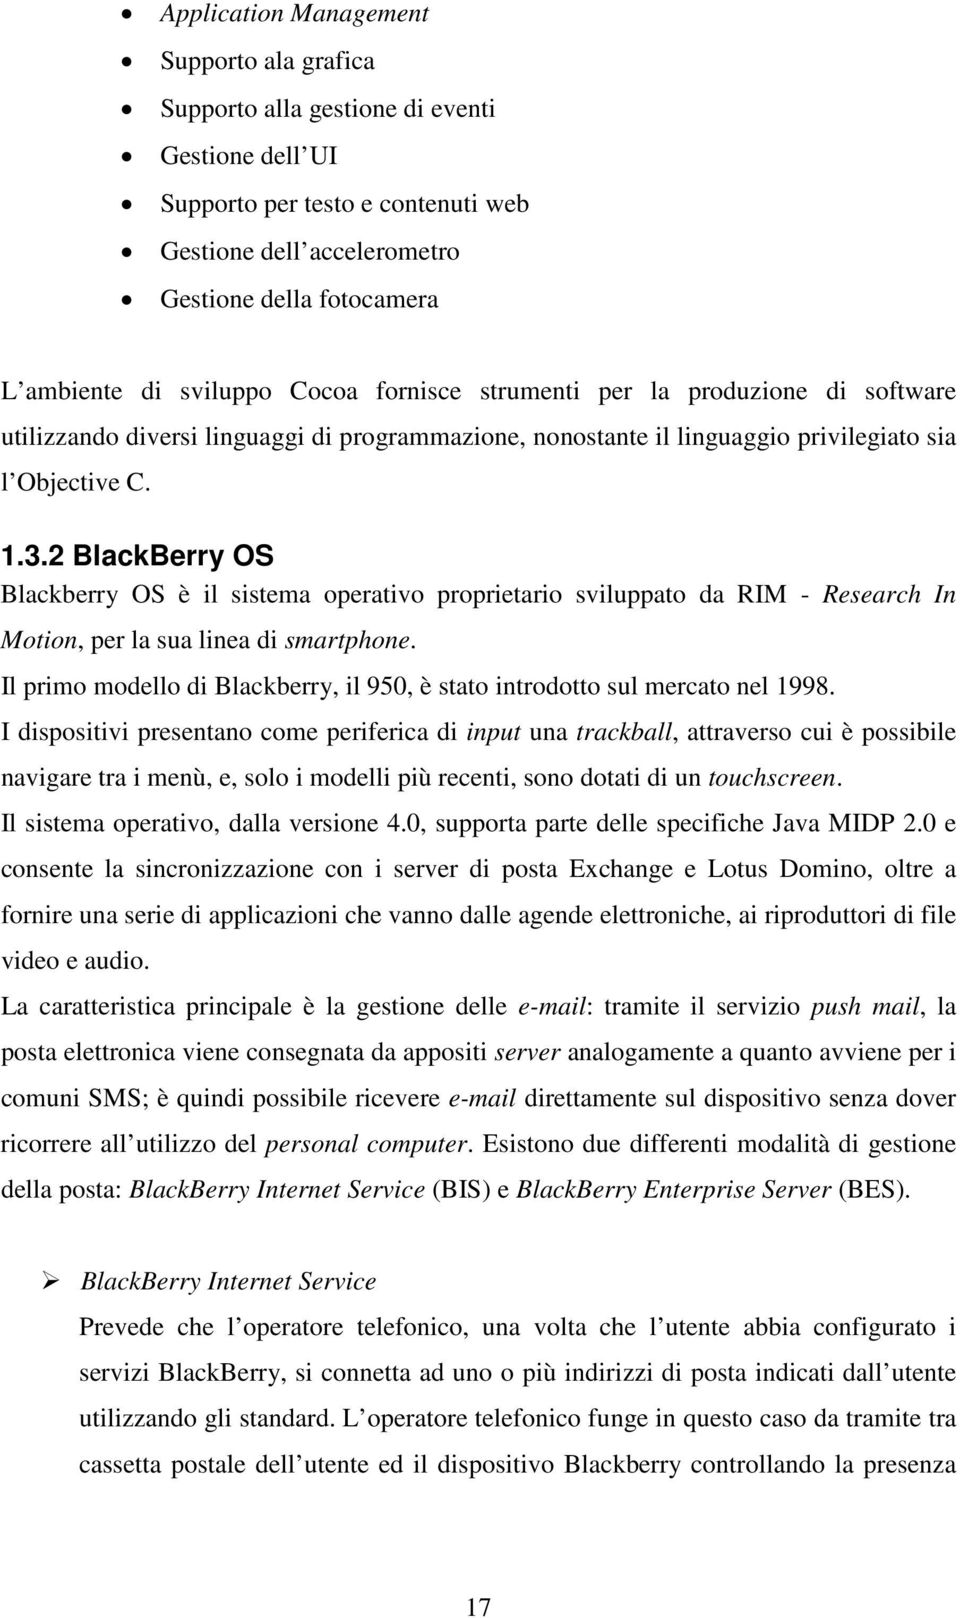 2 BlackBerry OS Blackberry OS è il sistema operativo proprietario sviluppato da RIM - Research In Motion, per la sua linea di smartphone.